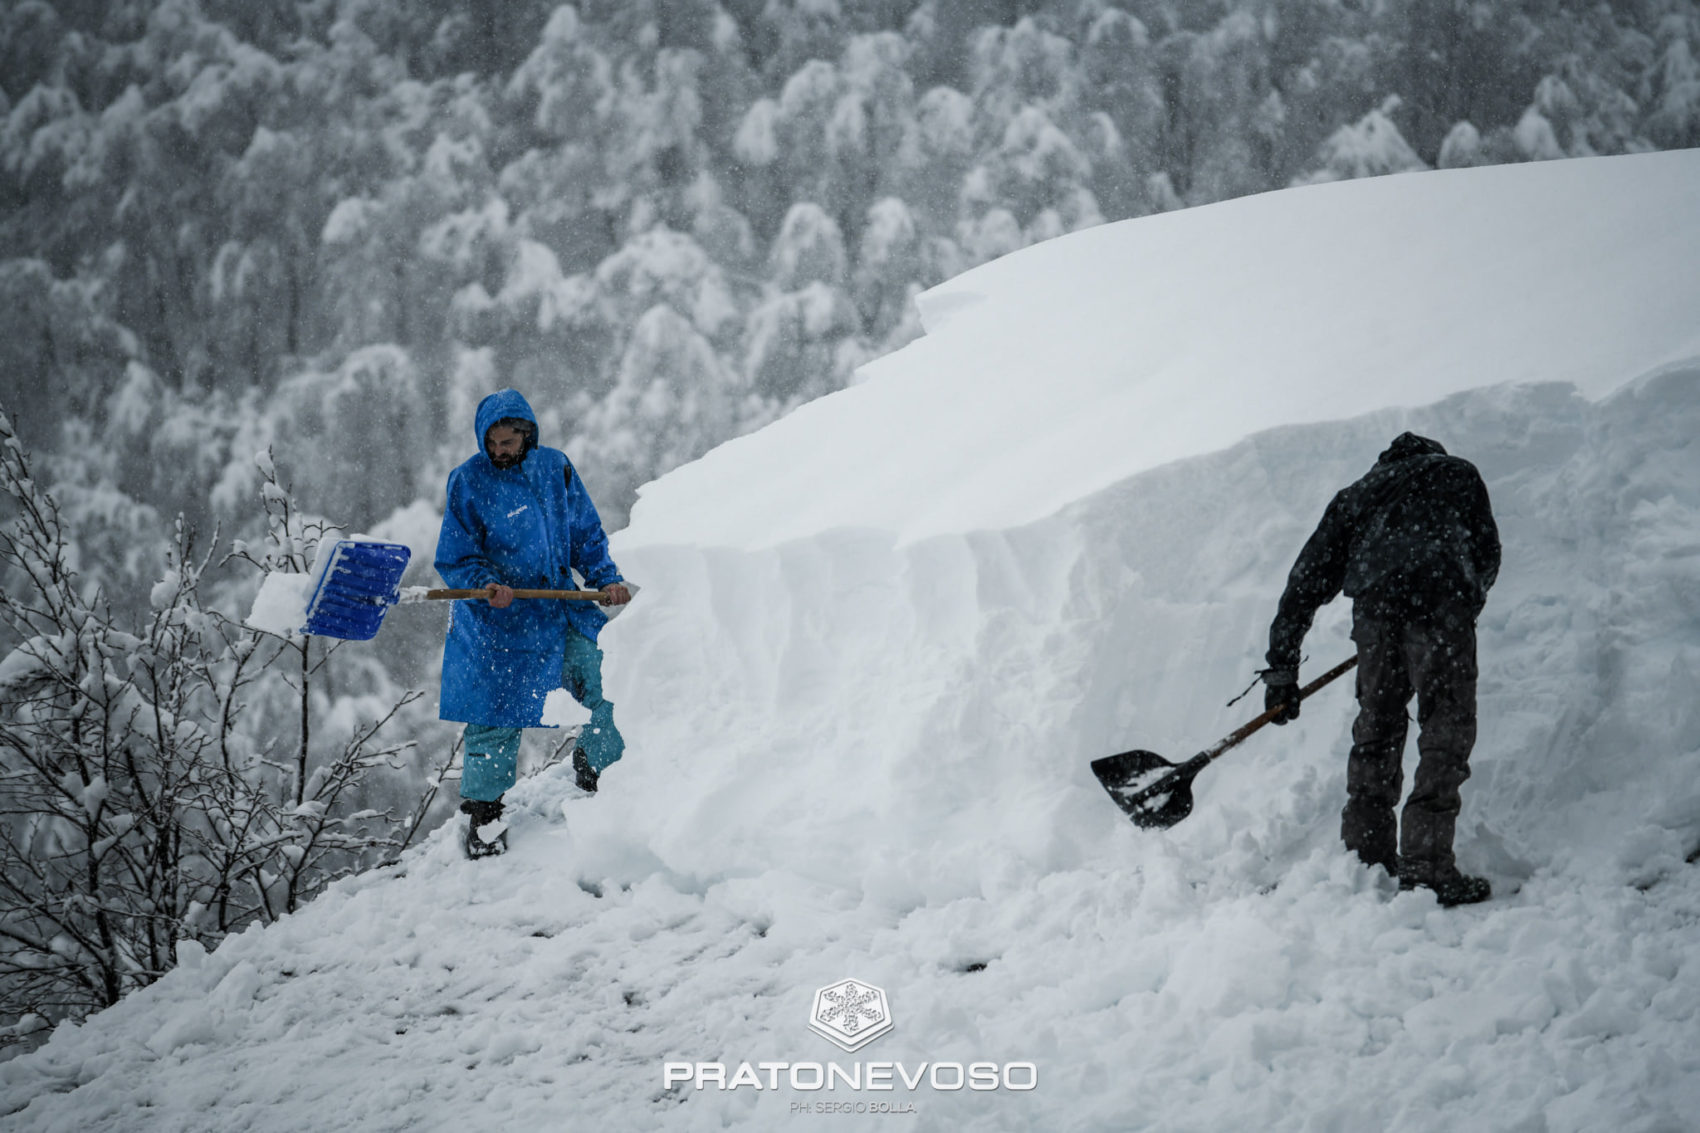 5 feet of new snow in the alps